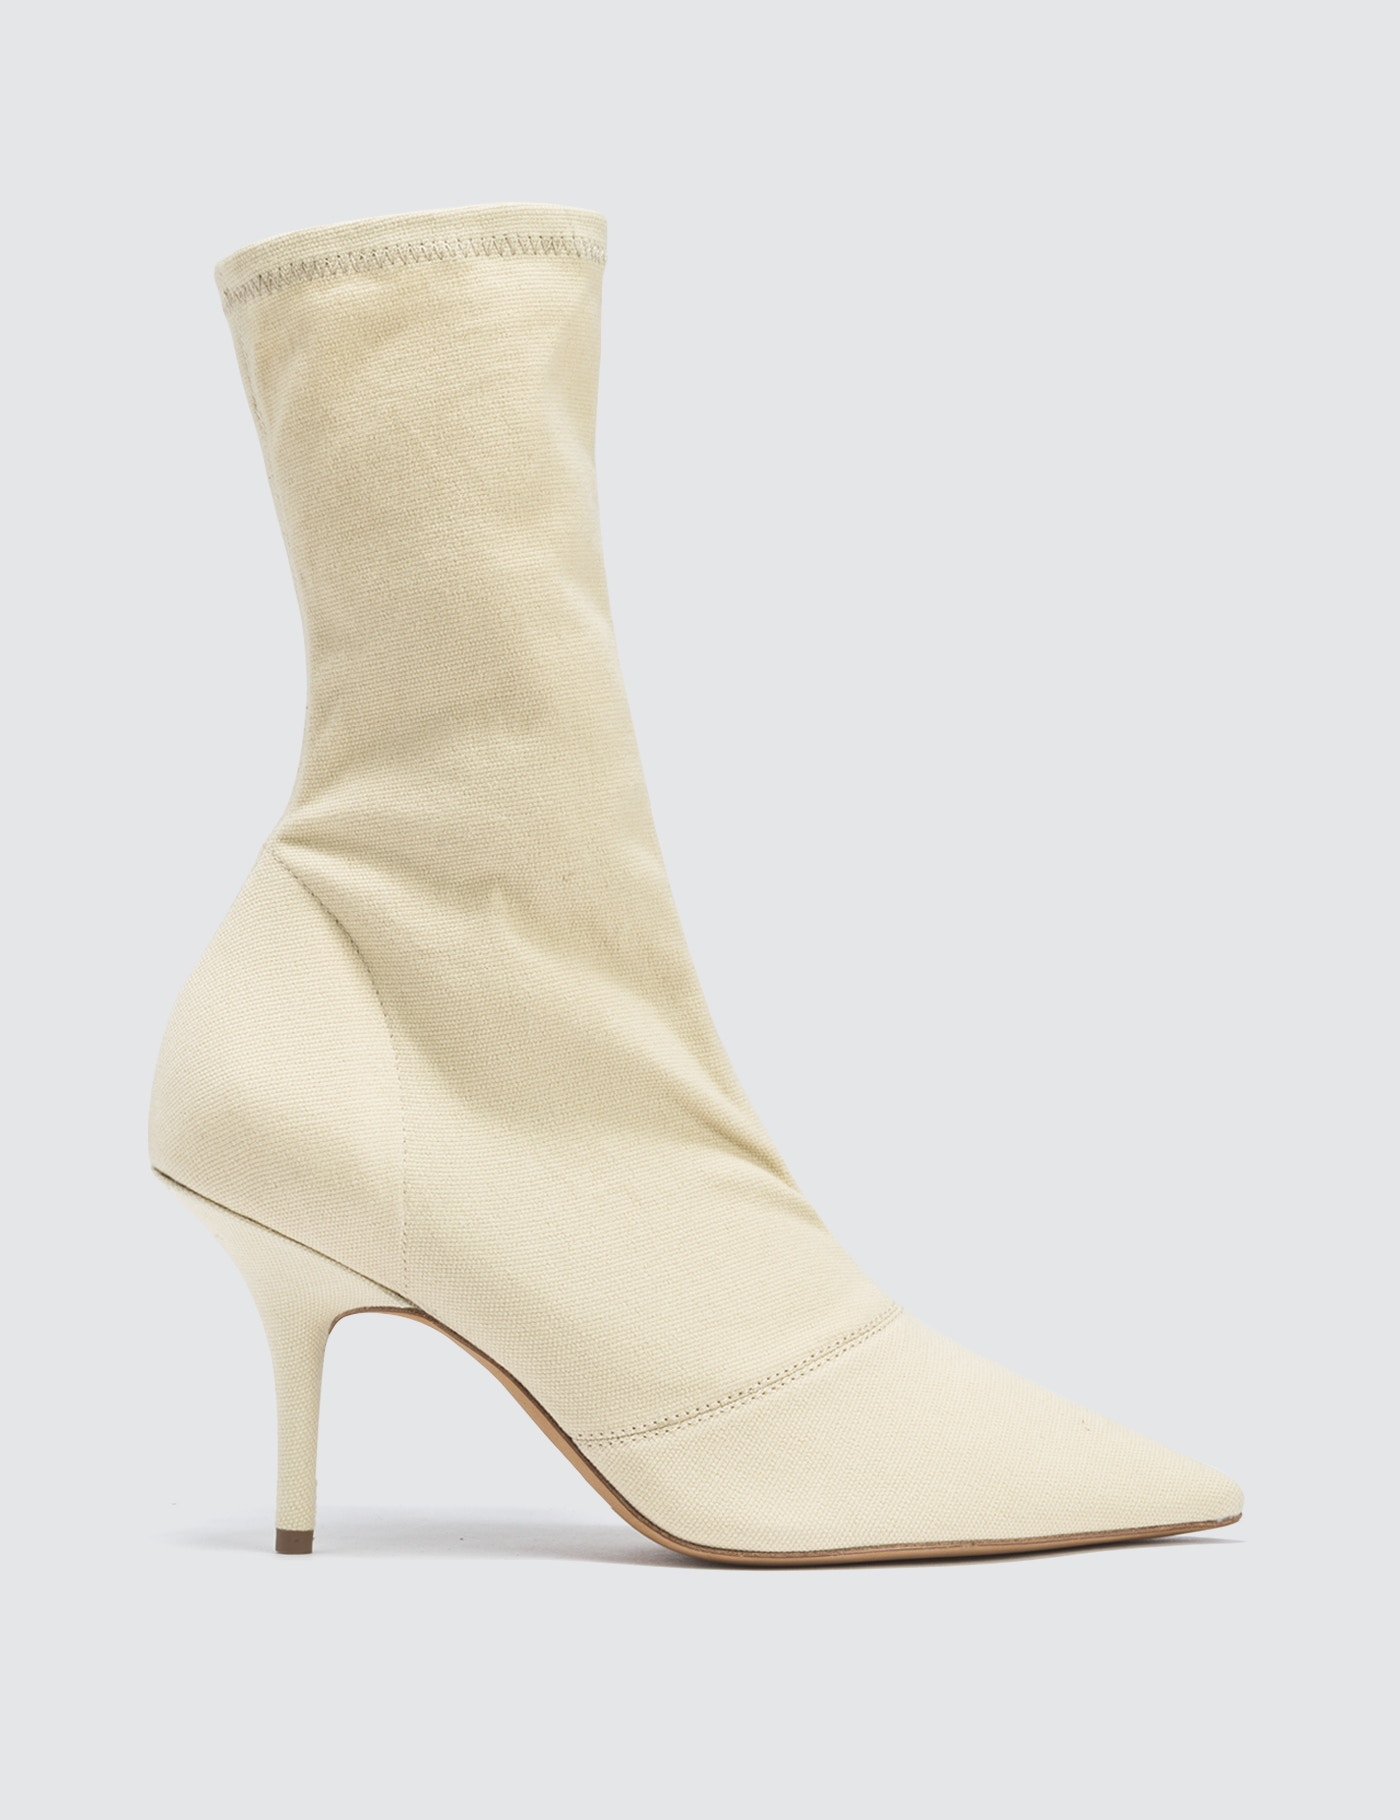 2d2d96a68 Buy Original Yeezy Season 6 Women s Ankle Boot In Stretch Canvas ...